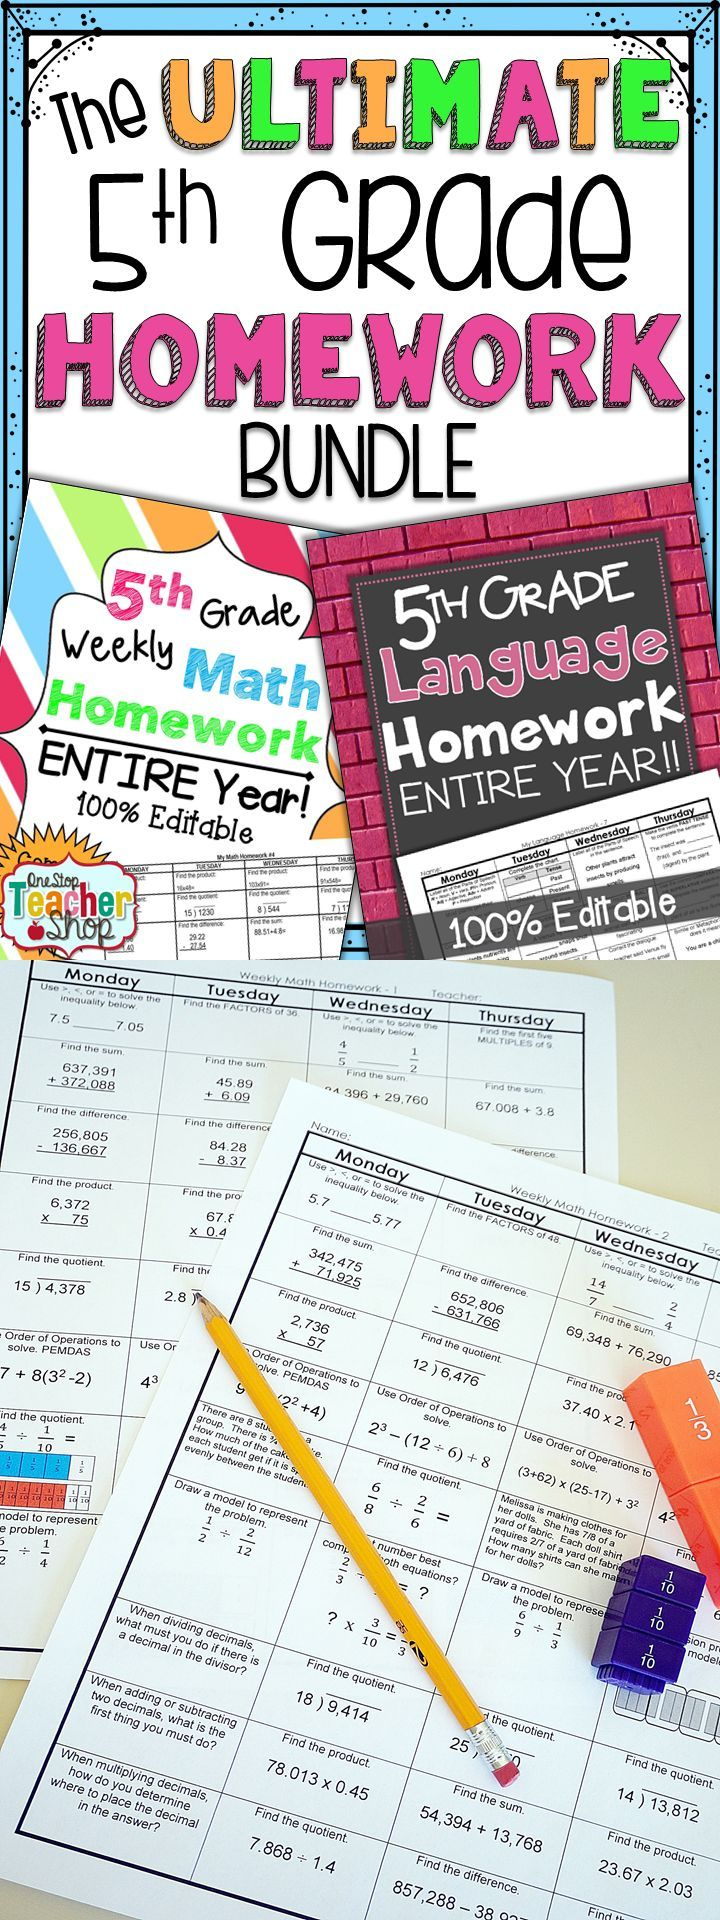 Uncategorized Morning Math Worksheets best 25 grade 5 math worksheets ideas on pinterest year 7 maths 5th language homework for the entire this fifth homework